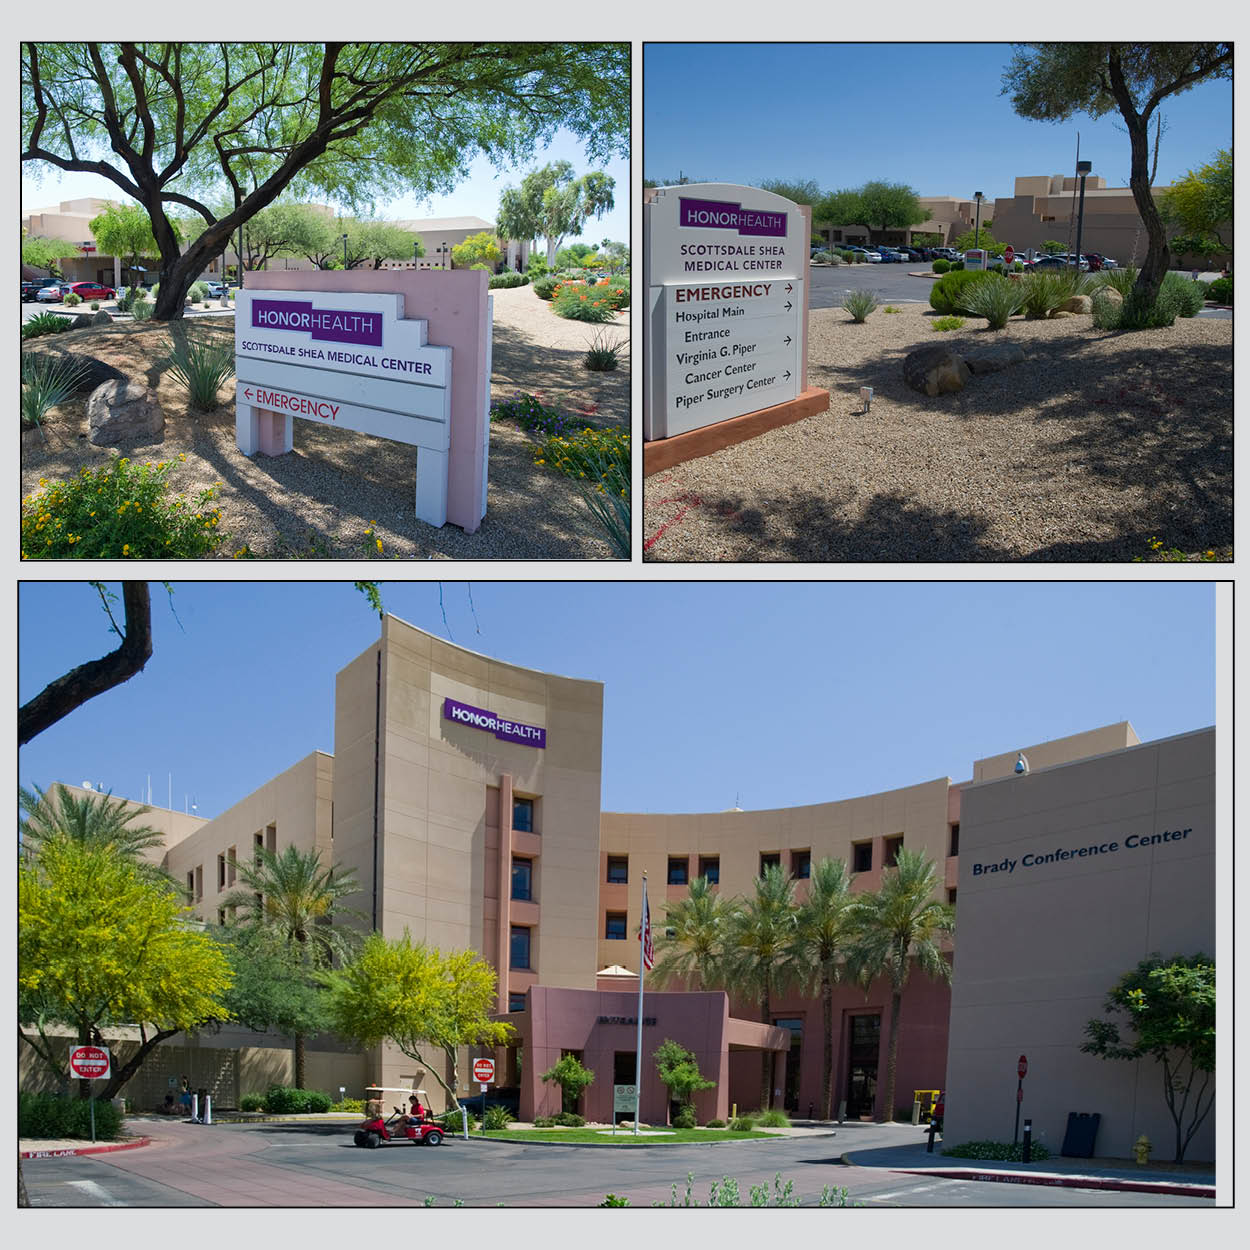 HonorHealth Scottsdale Shea Medical Center  100 Hospitals with Great